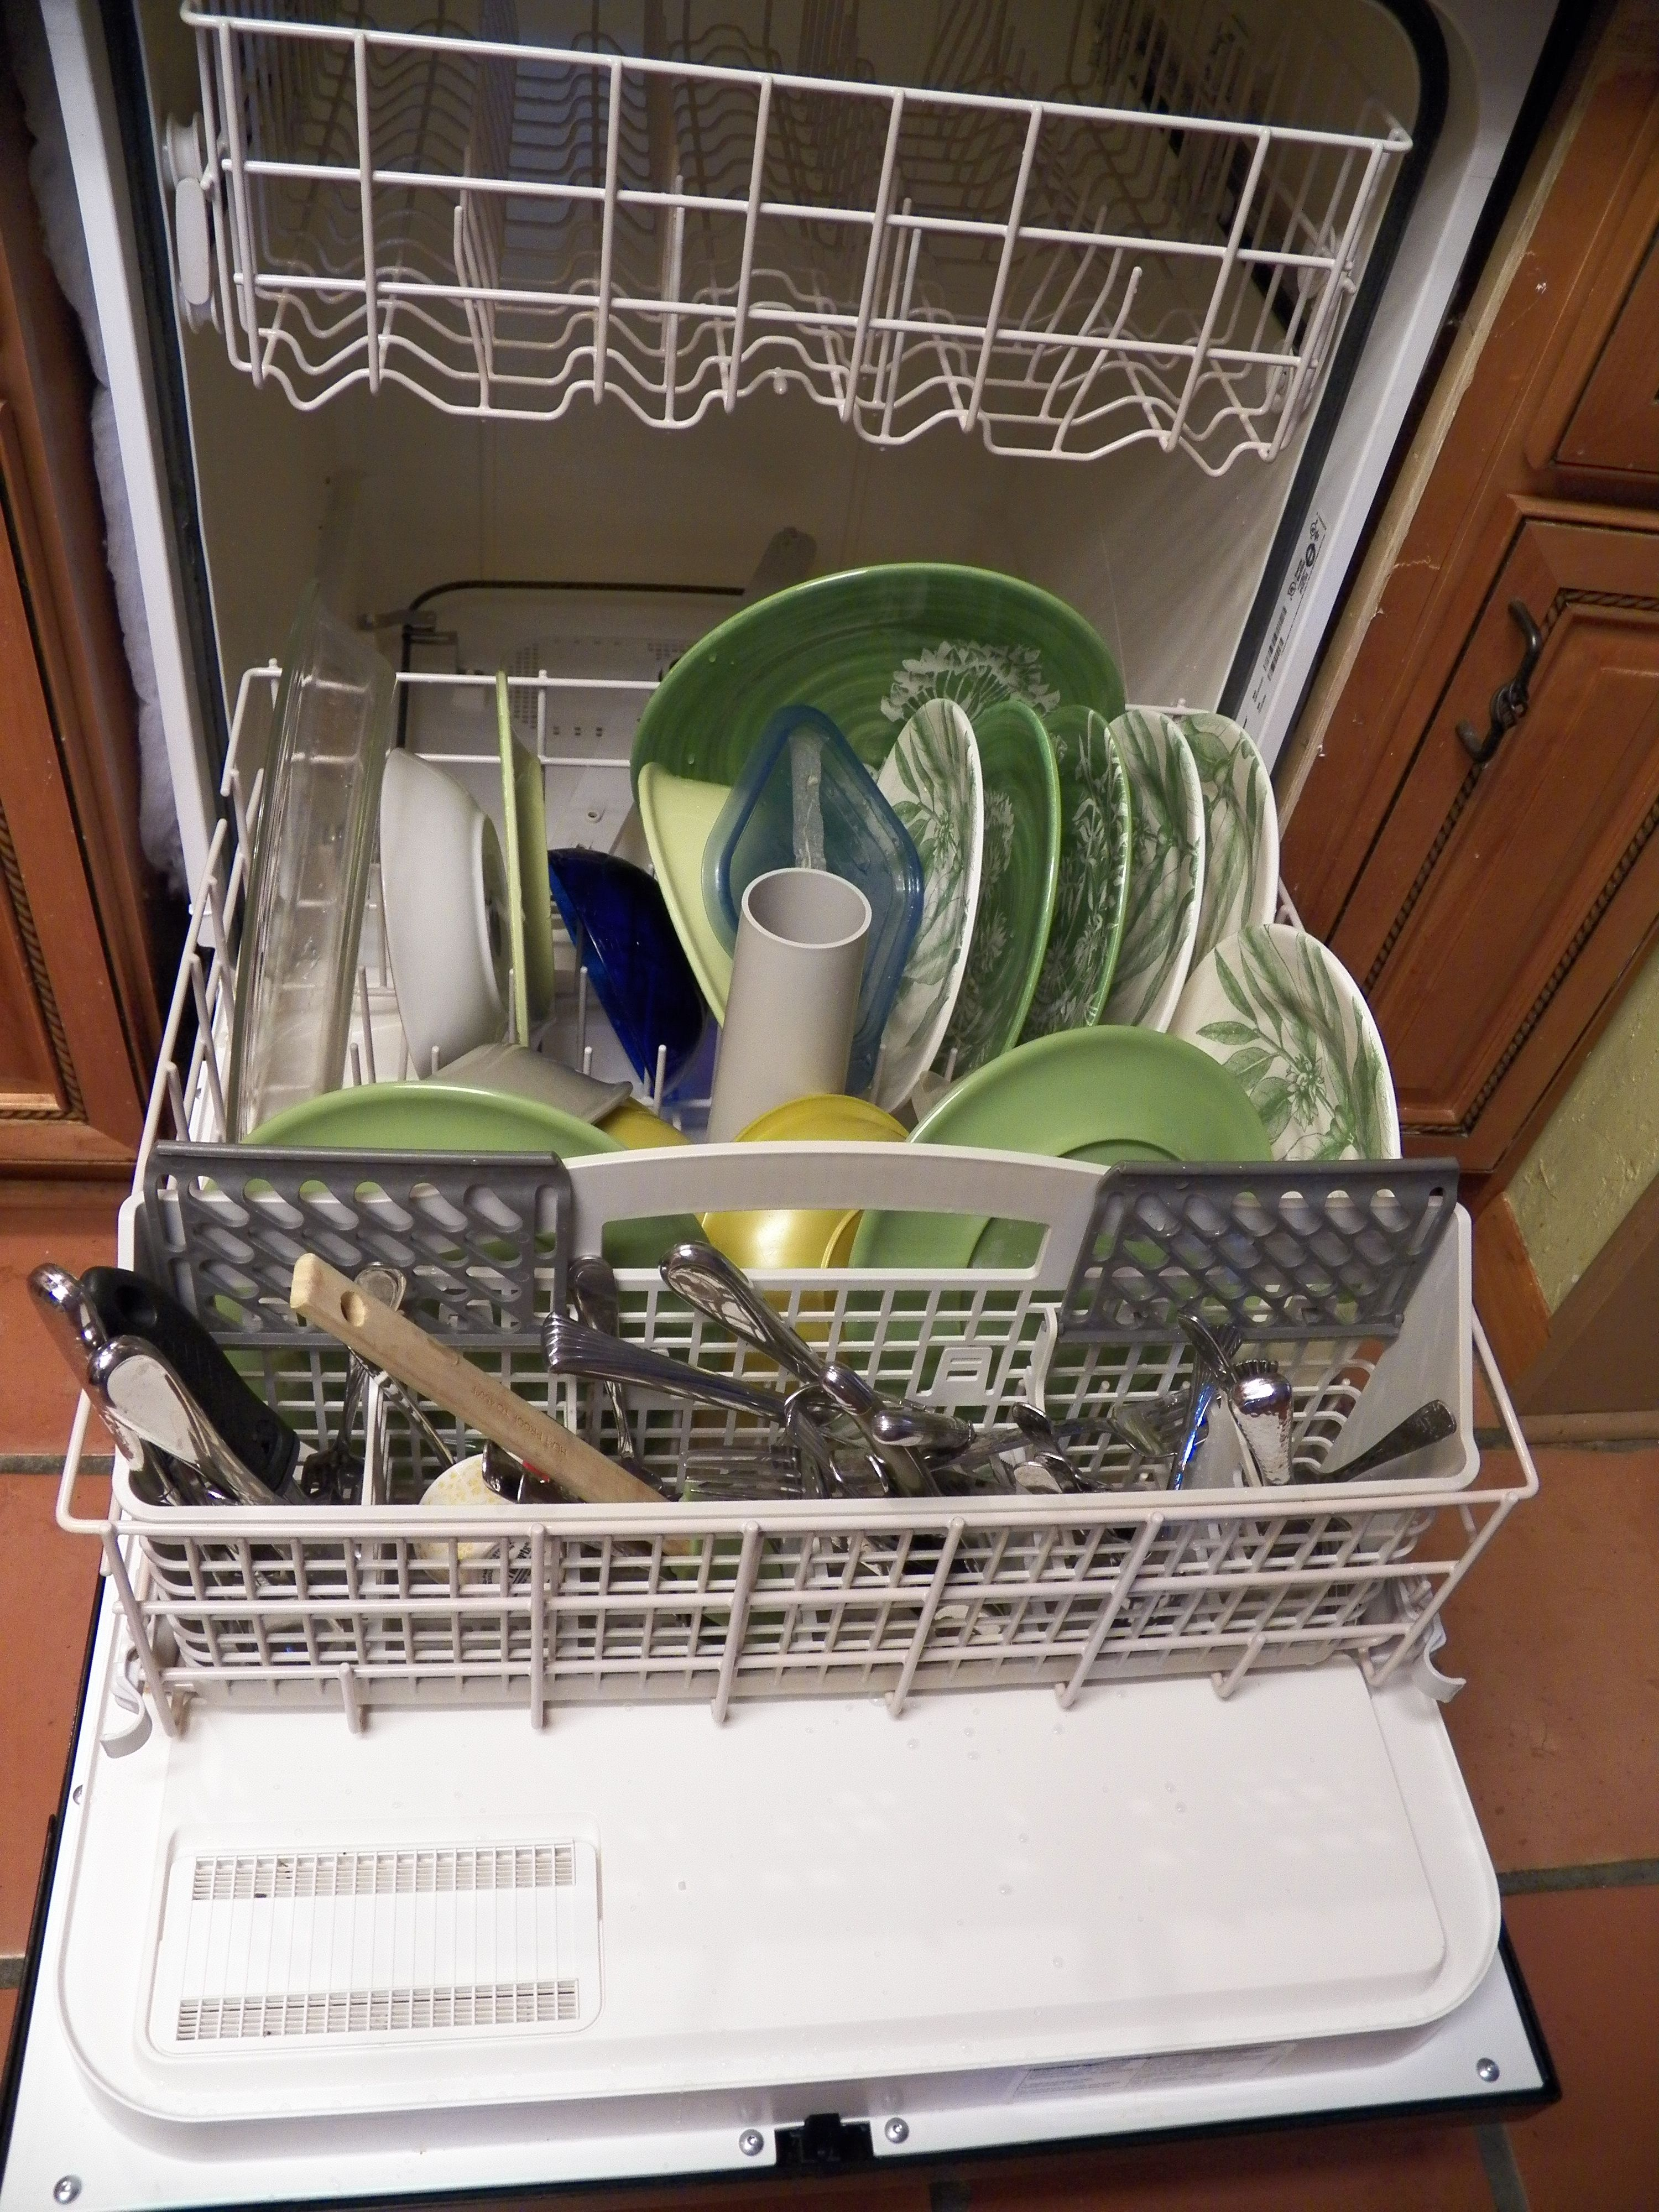 Is extended warranty worth it dishwasher fitting amana